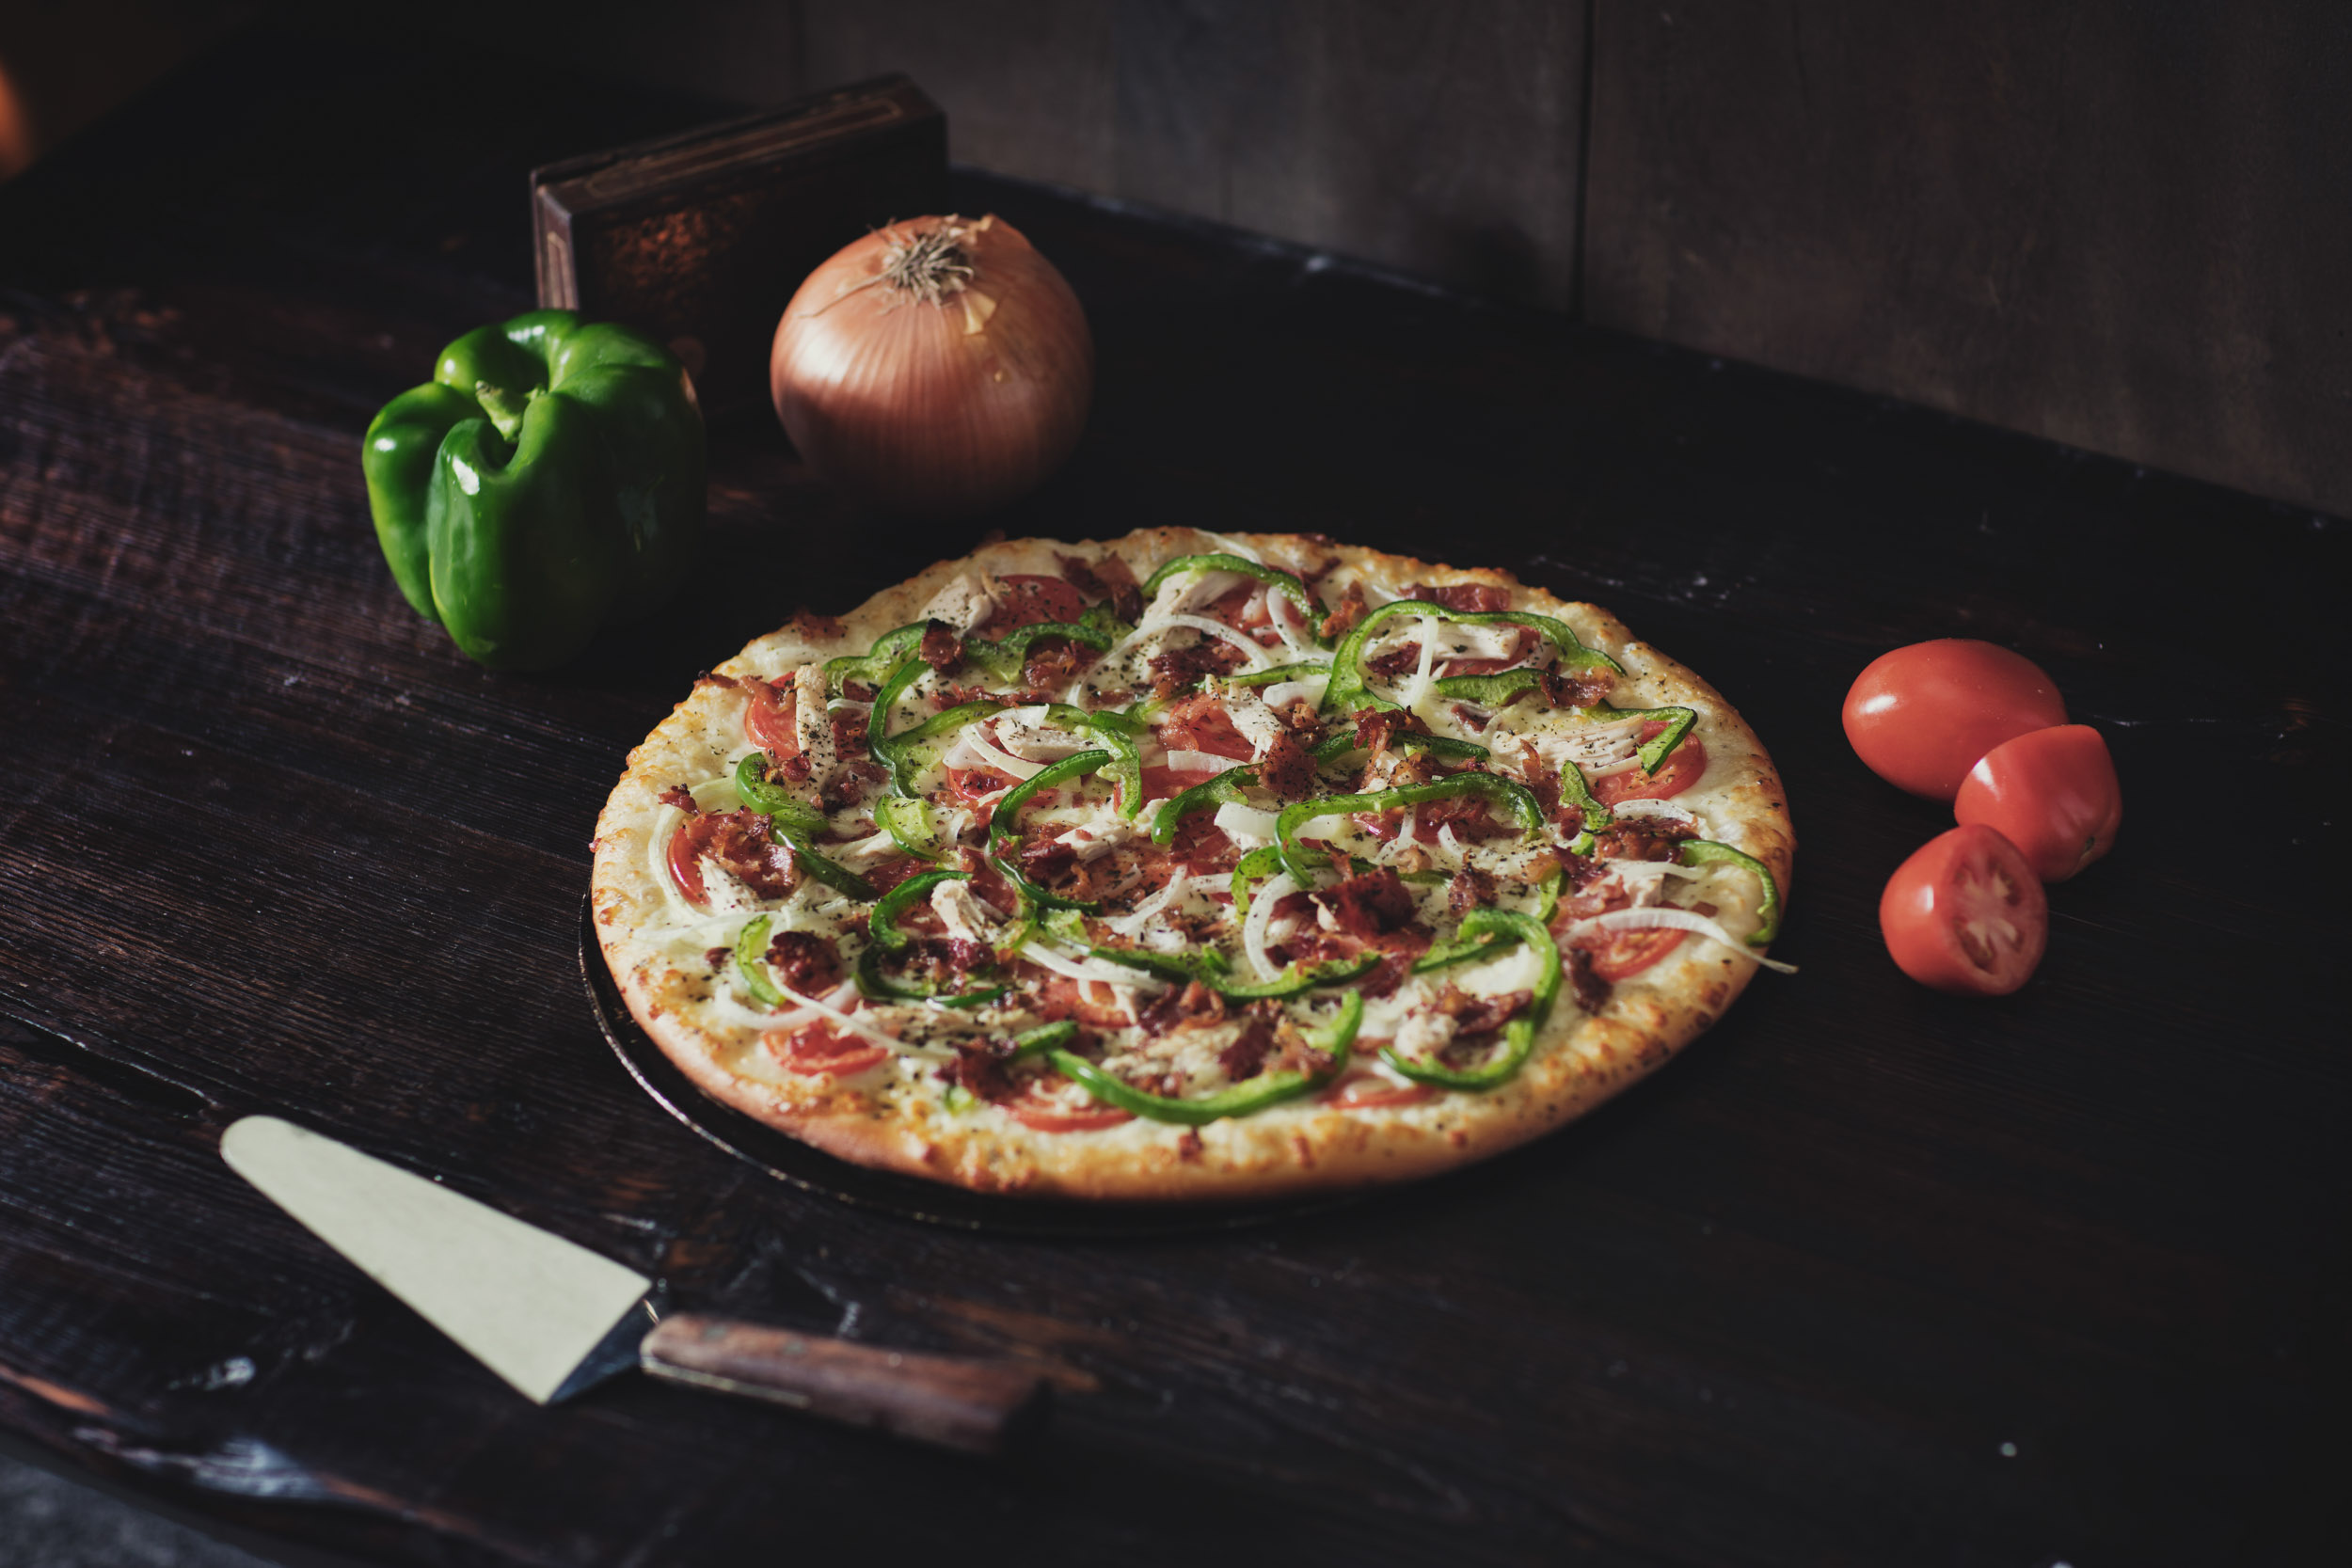 Fresh baked hand tossed pizza with tomato, green pepper, and onion on table